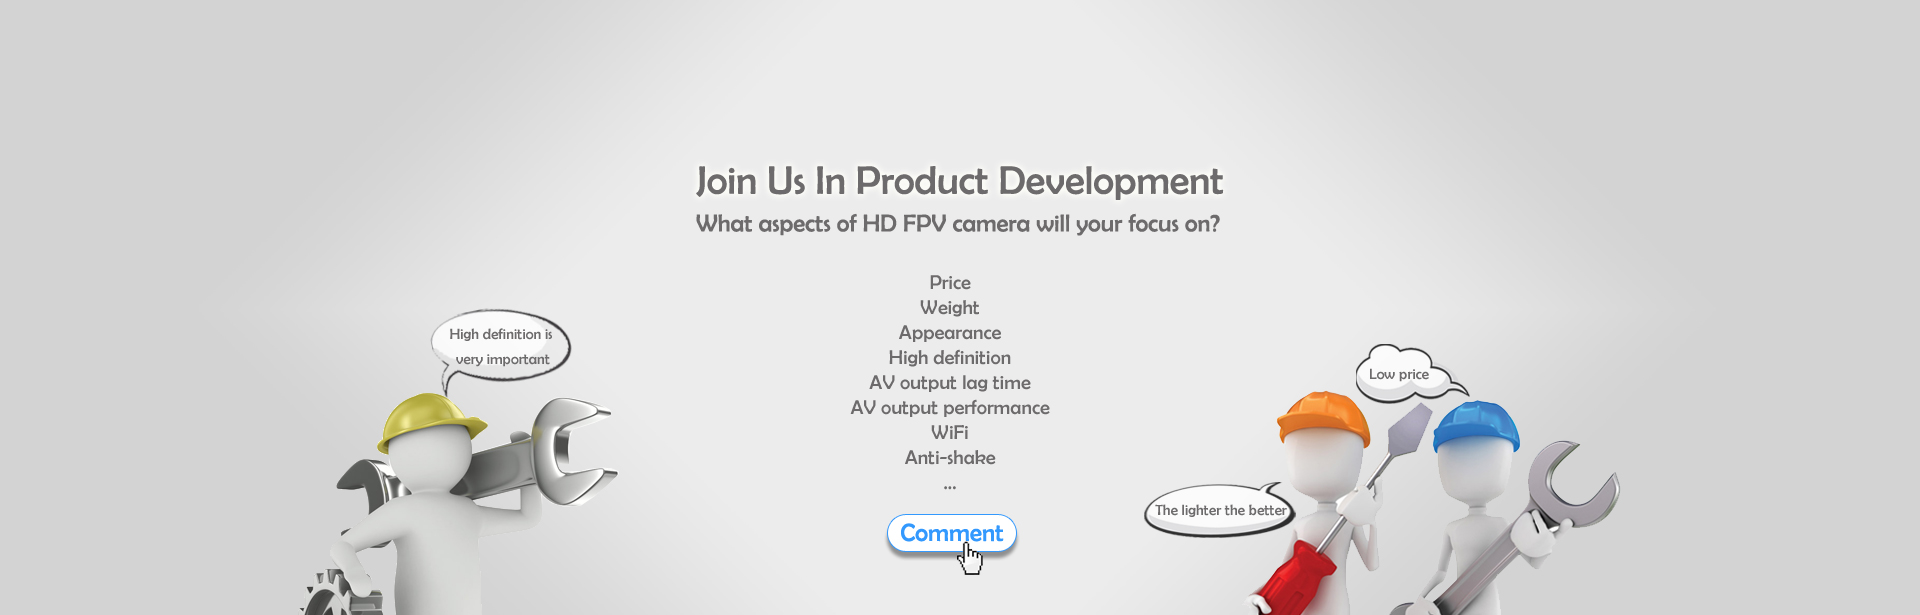 Join Us In Product Development